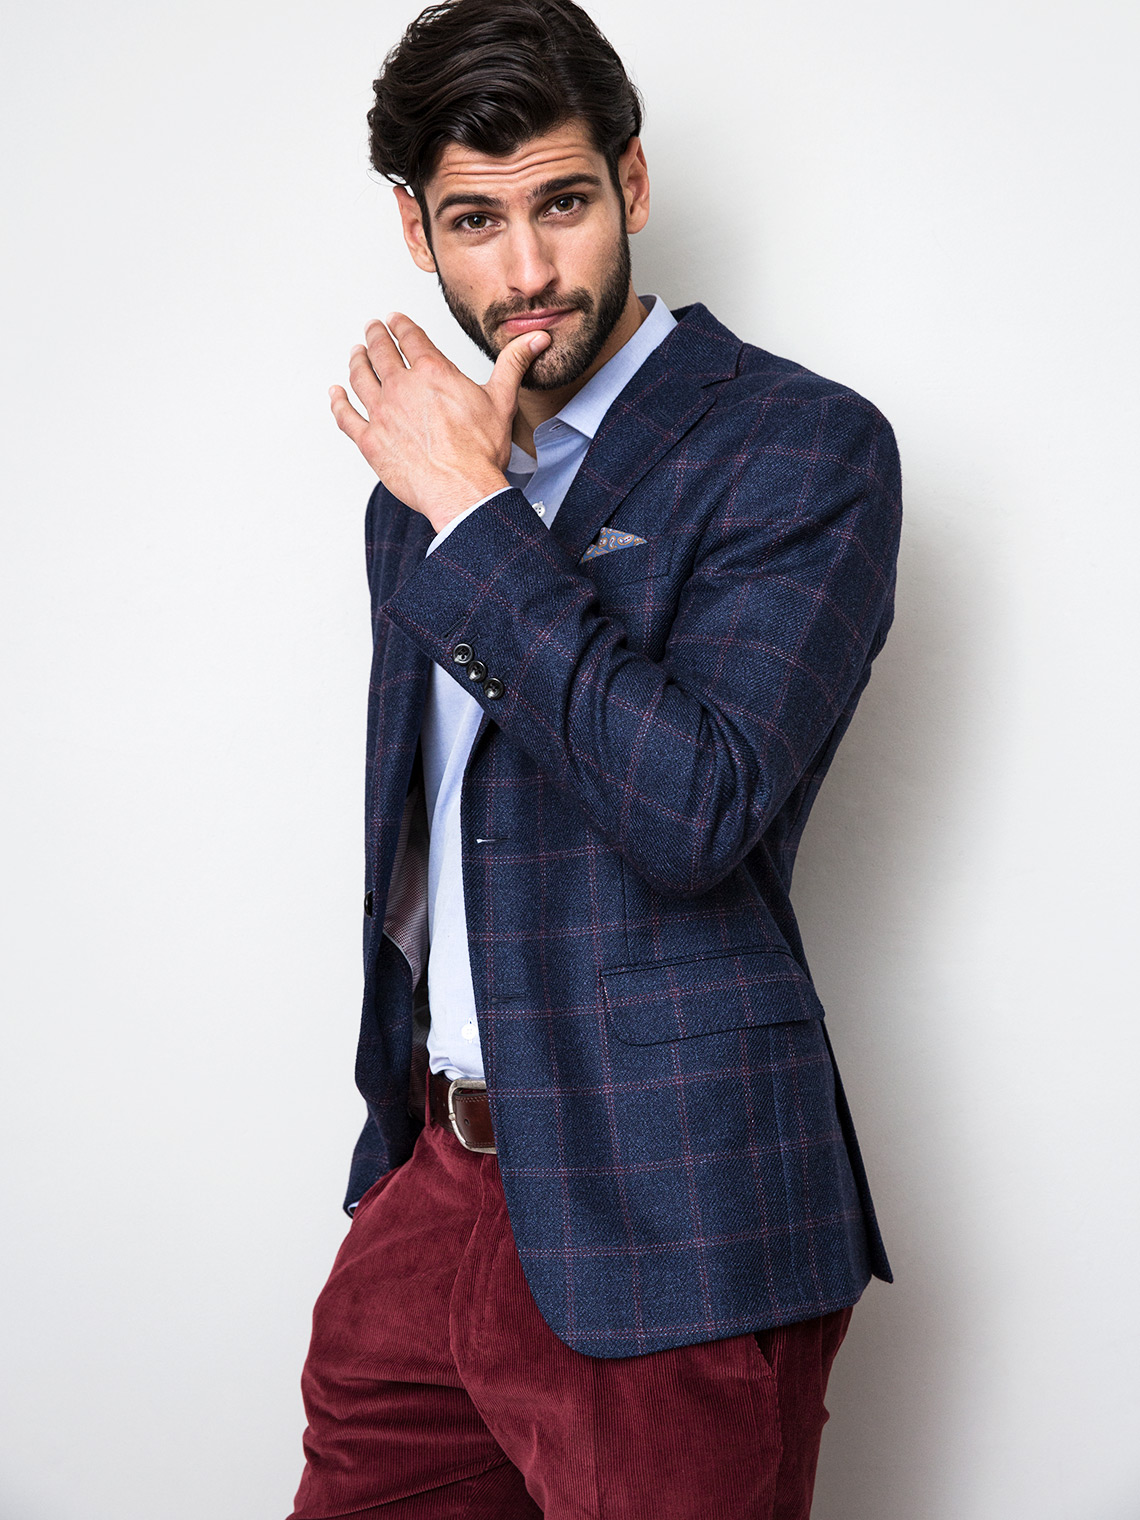 brian-sorg-tc-nyc-02-TCM_Lookbook_Gant_Shot02_051